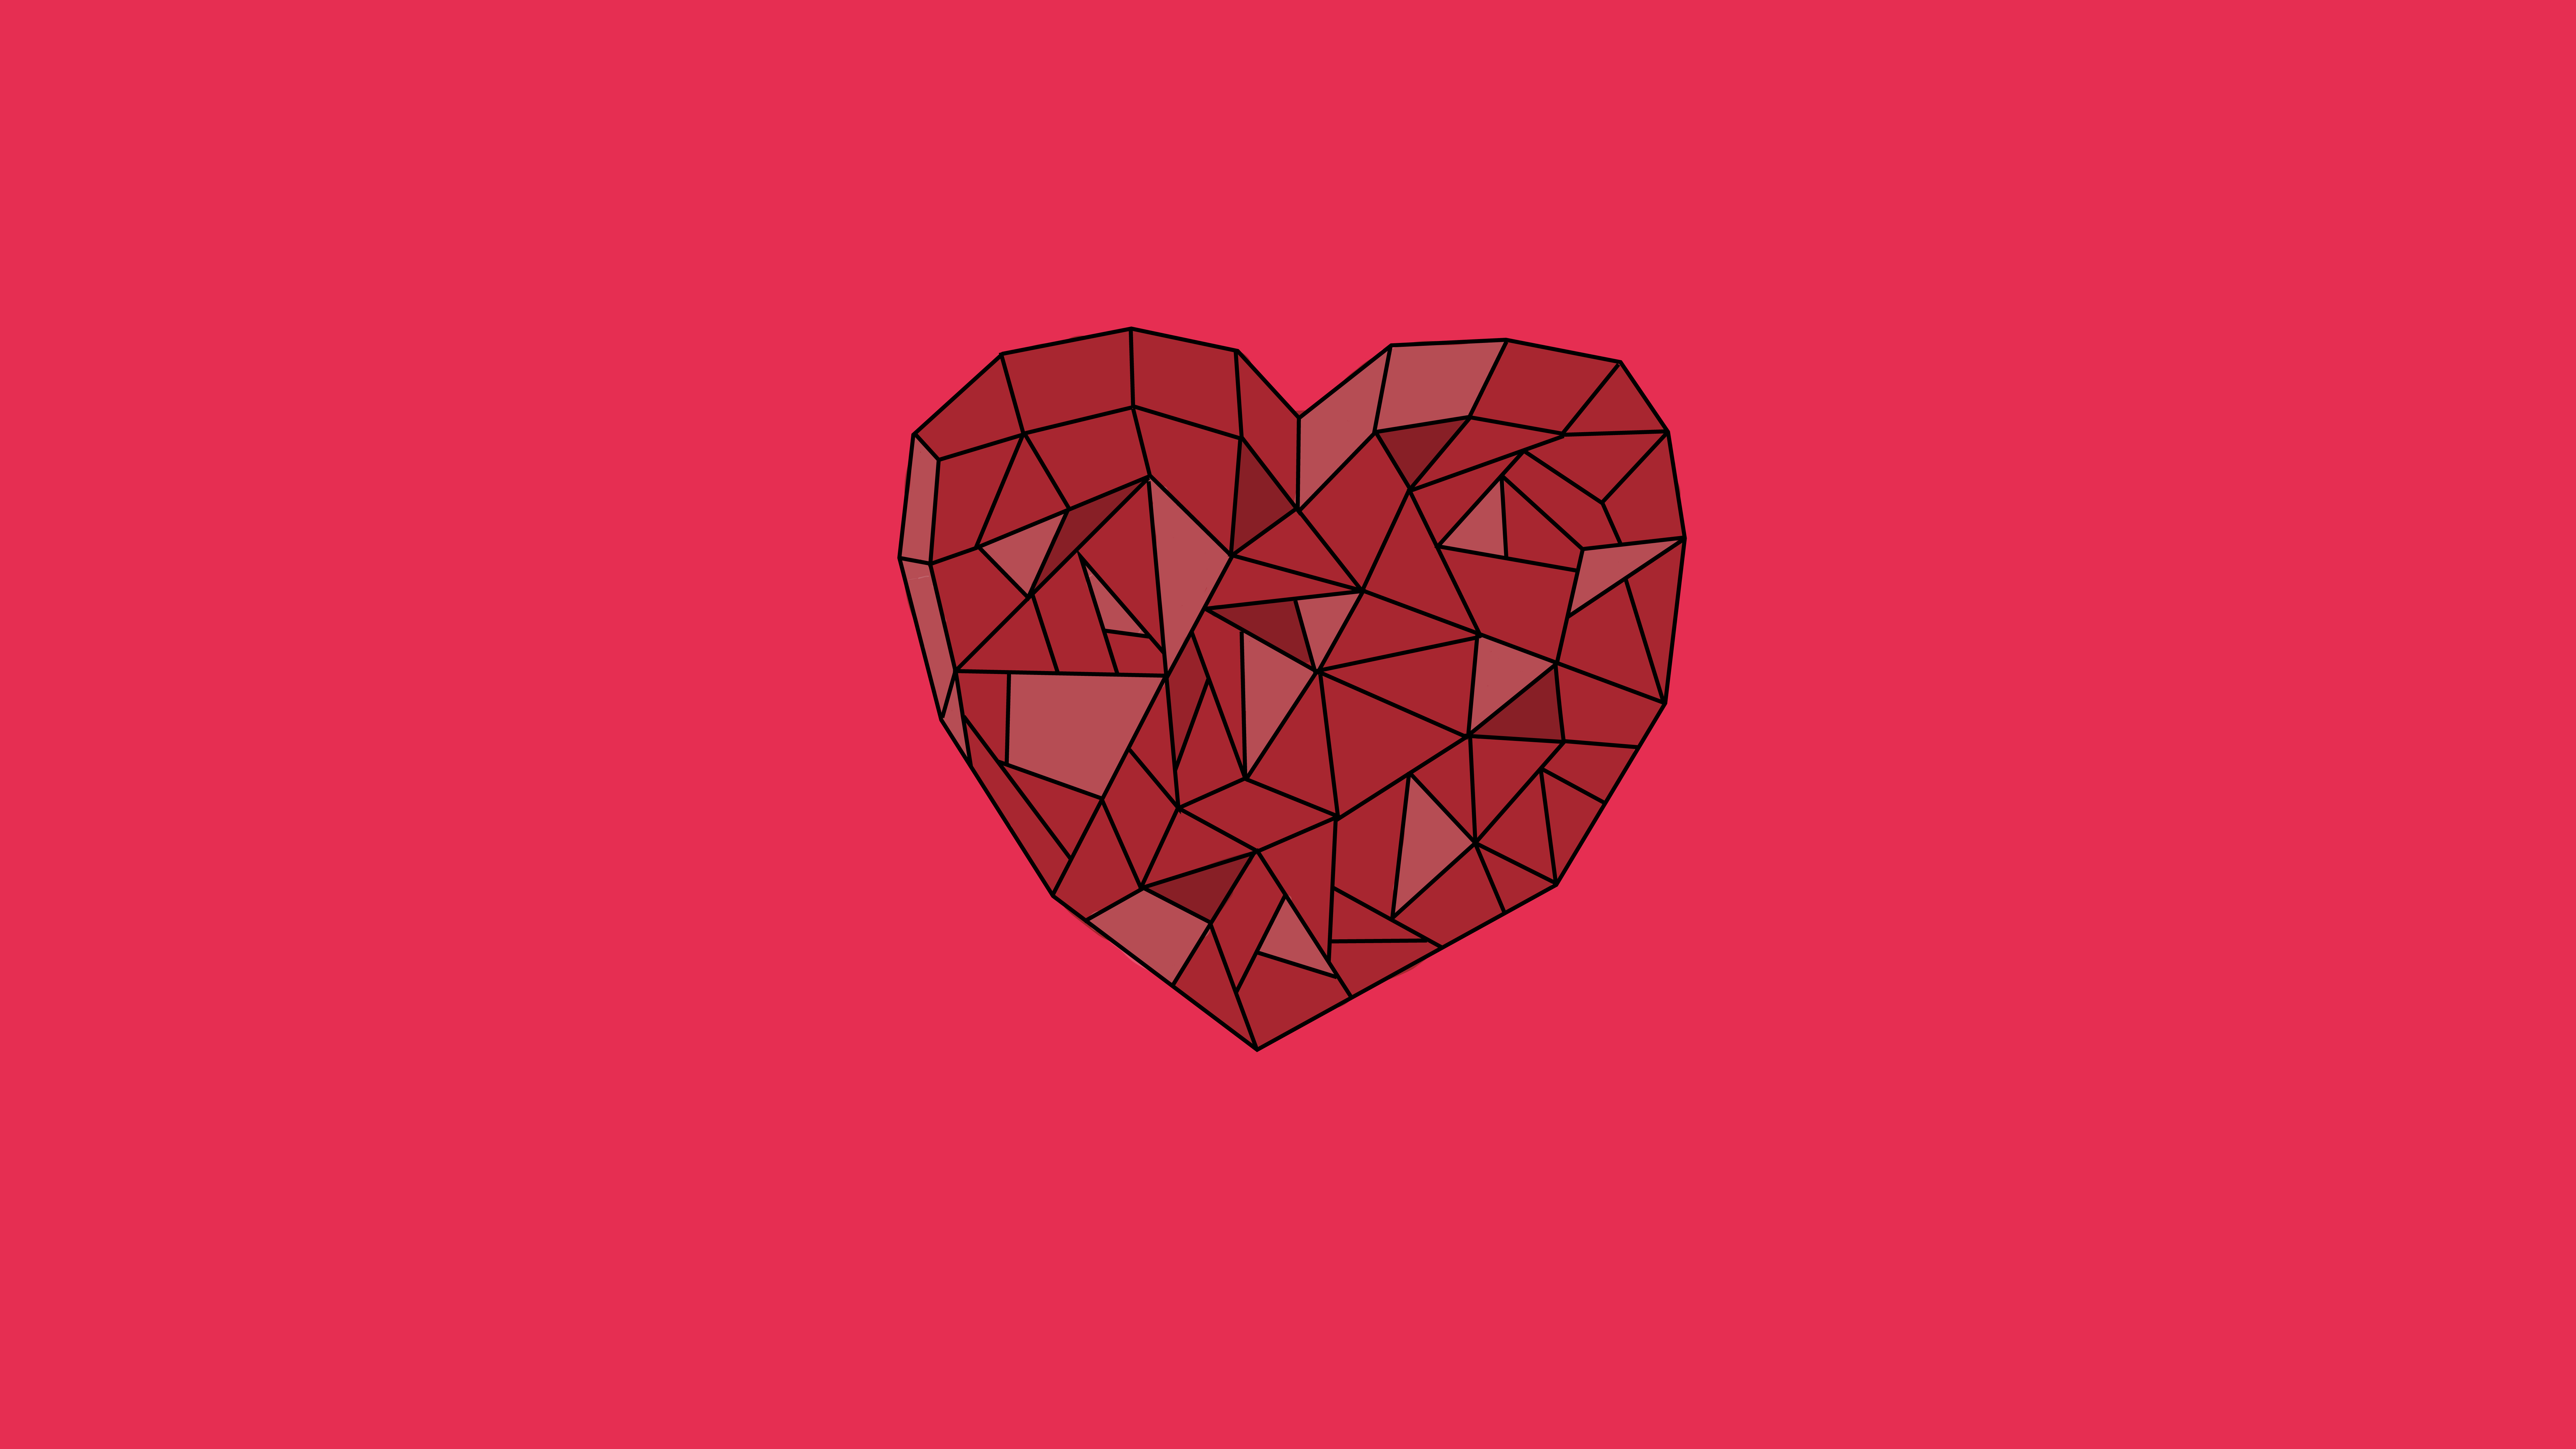 Crystal Heart Love Pink Red 8000x4500